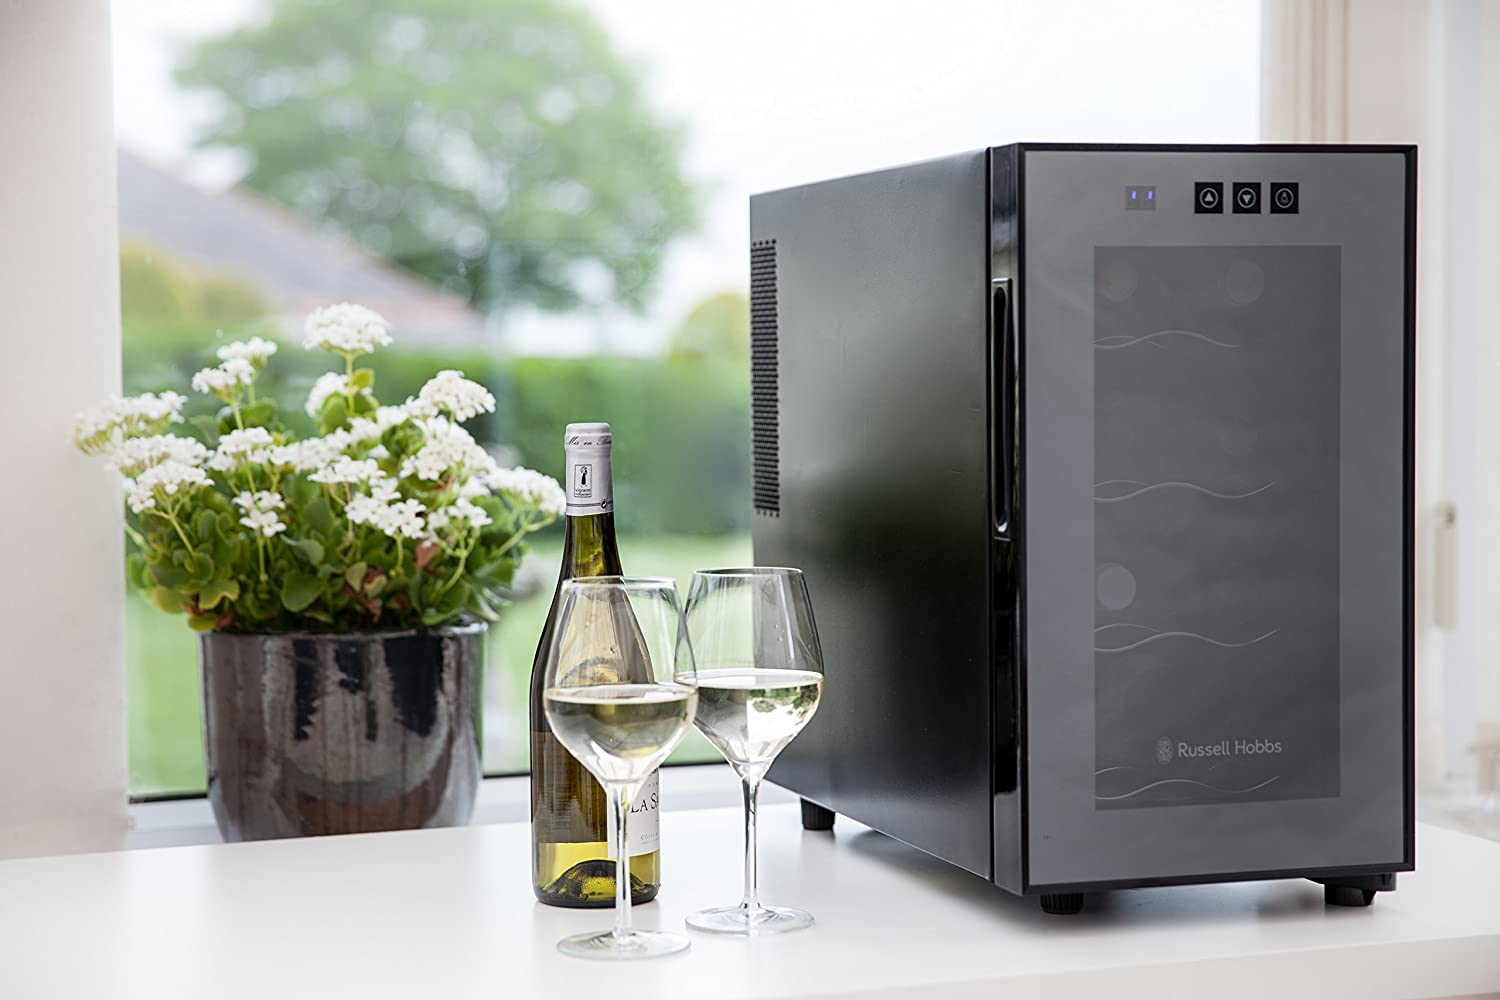 The Russell Hobbs RH8WC2 wine and beer cooler looks elegant and costs less than £100.